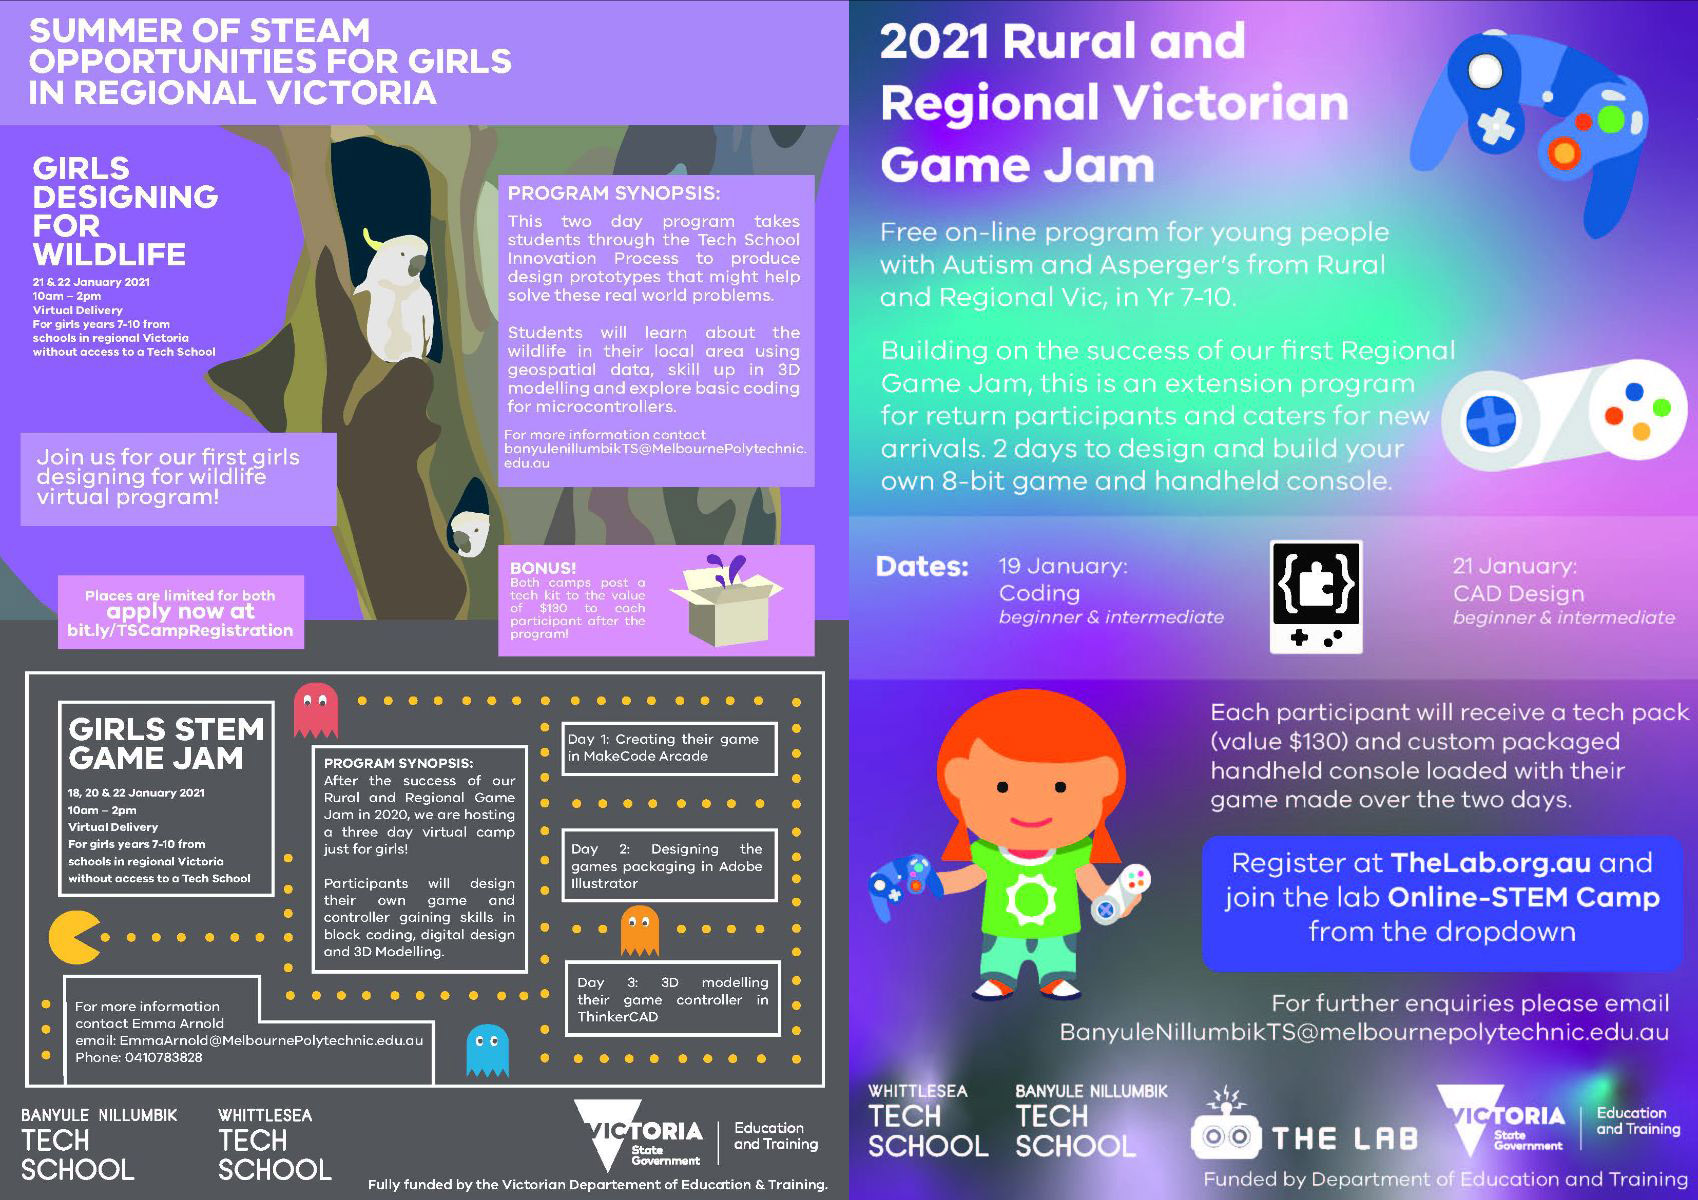 STEM Camps posters